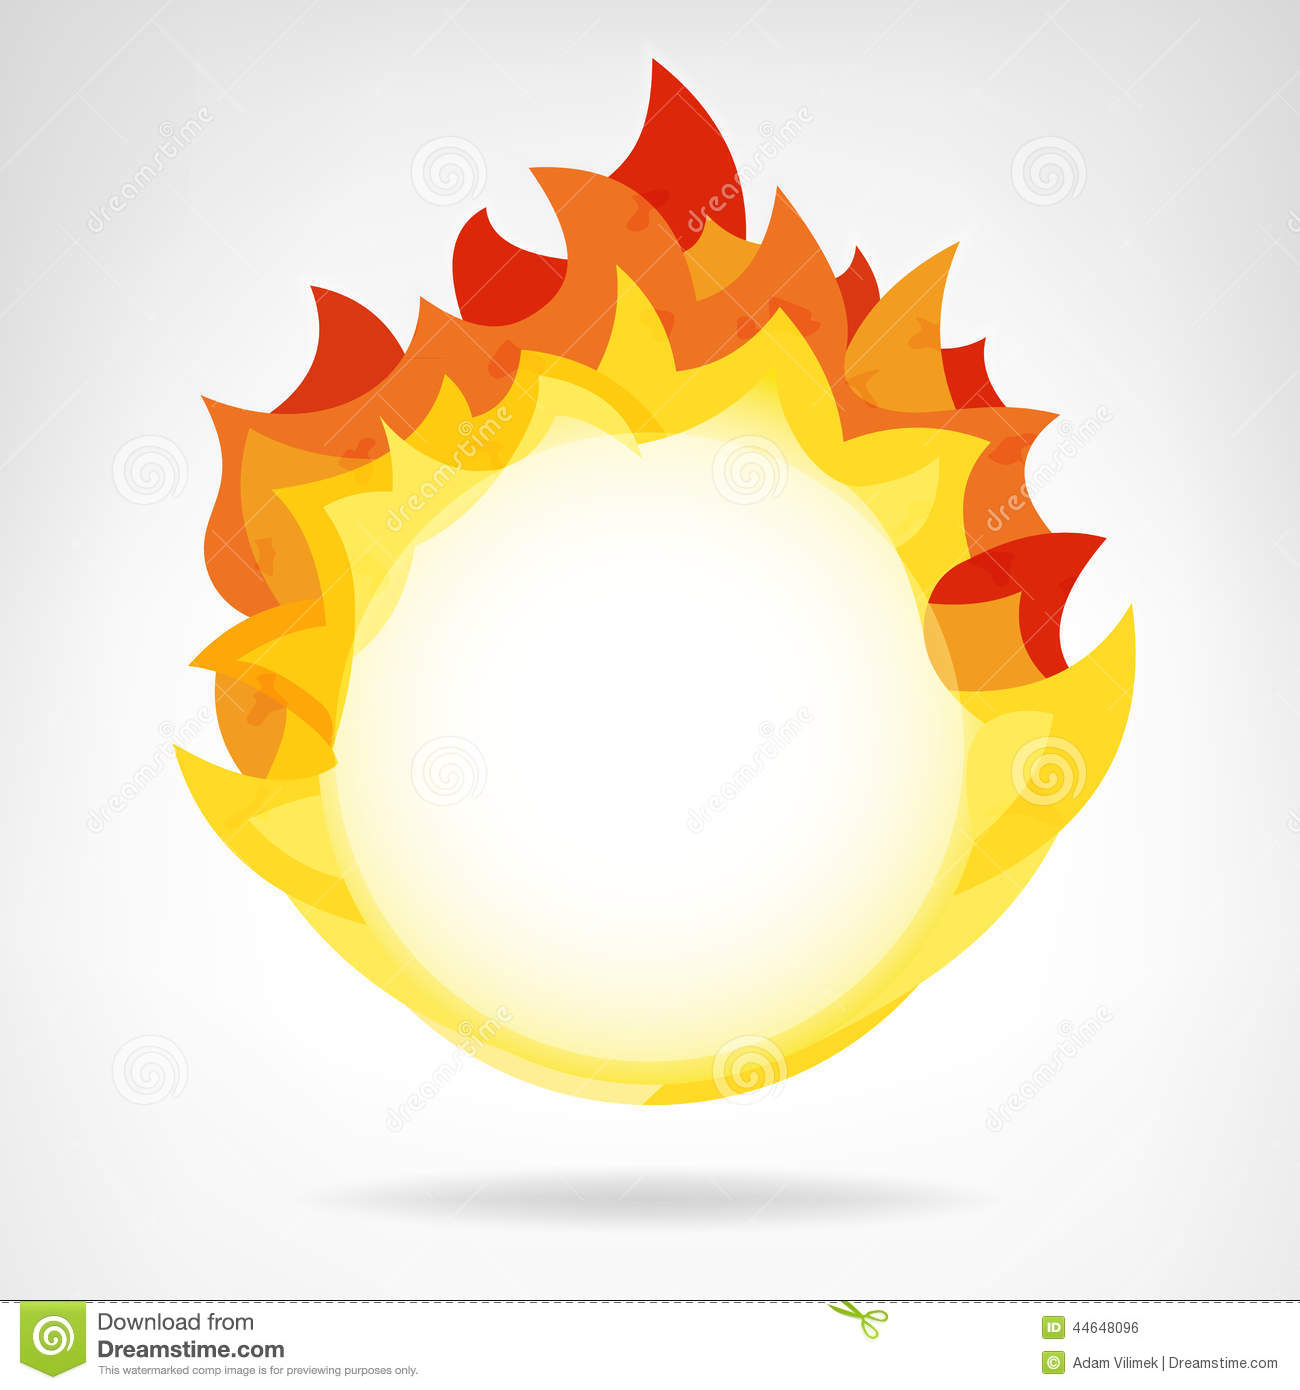 Circle of fire clipart.